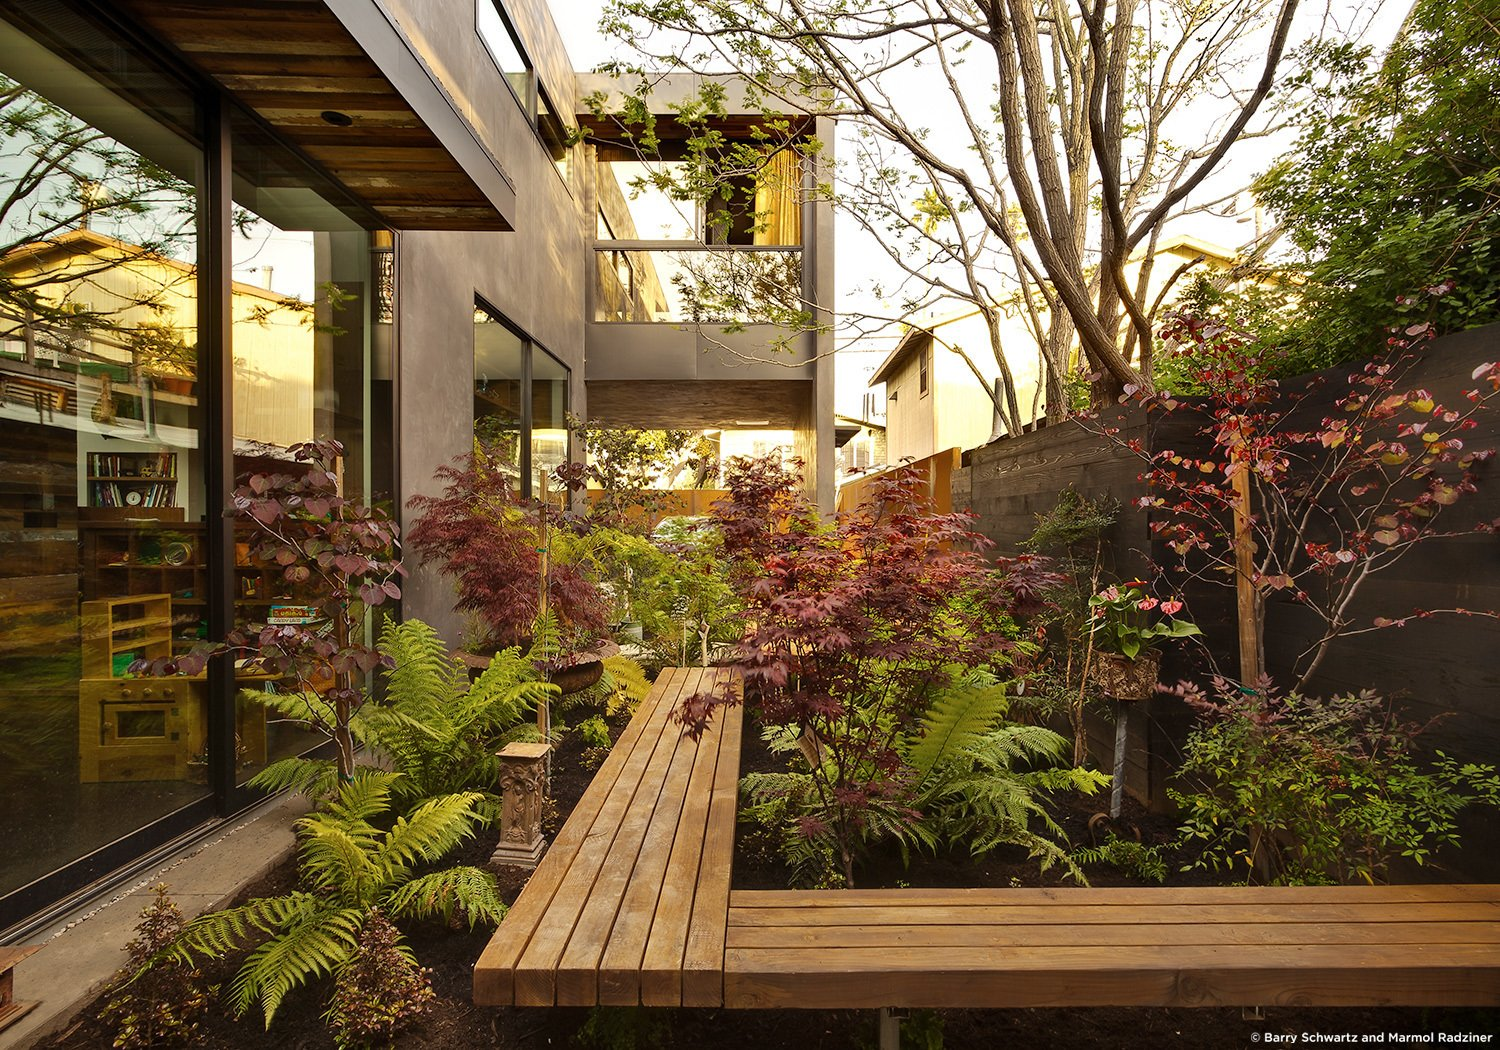 #SelaResidence #modern #midcentury #privacy #openness #two-story #lighting #exterior #outside #outdoor #landscape #green #windows #glass #seating #wood #panels #Venice #California #MarmolRadziner  Sela Residence by Marmol Radziner